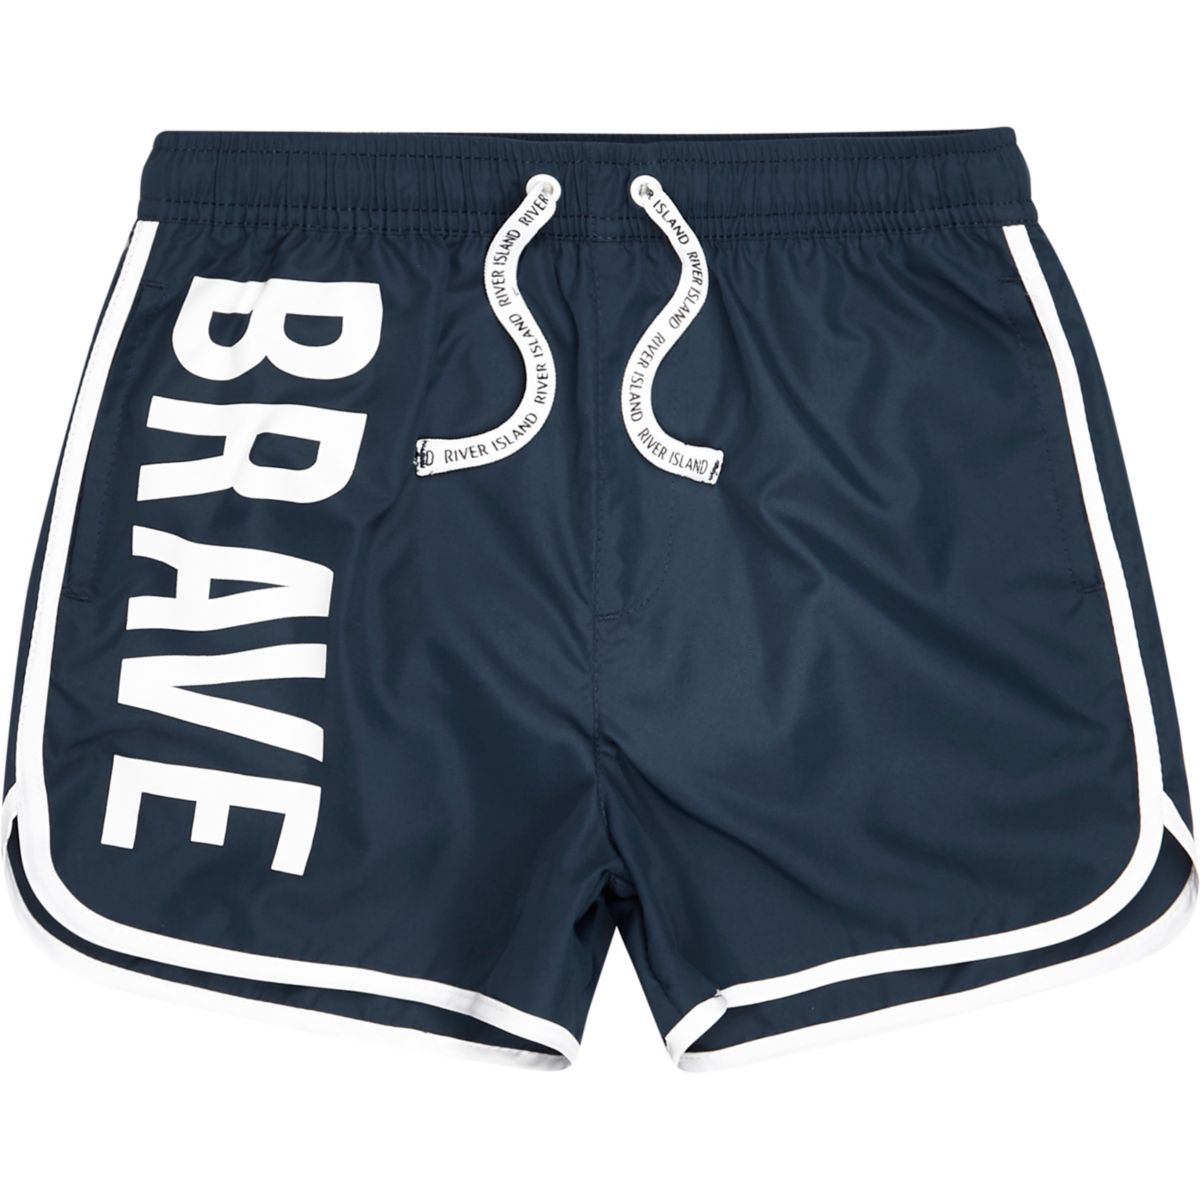 Boys blue RI 'brave' print runner swim trunks